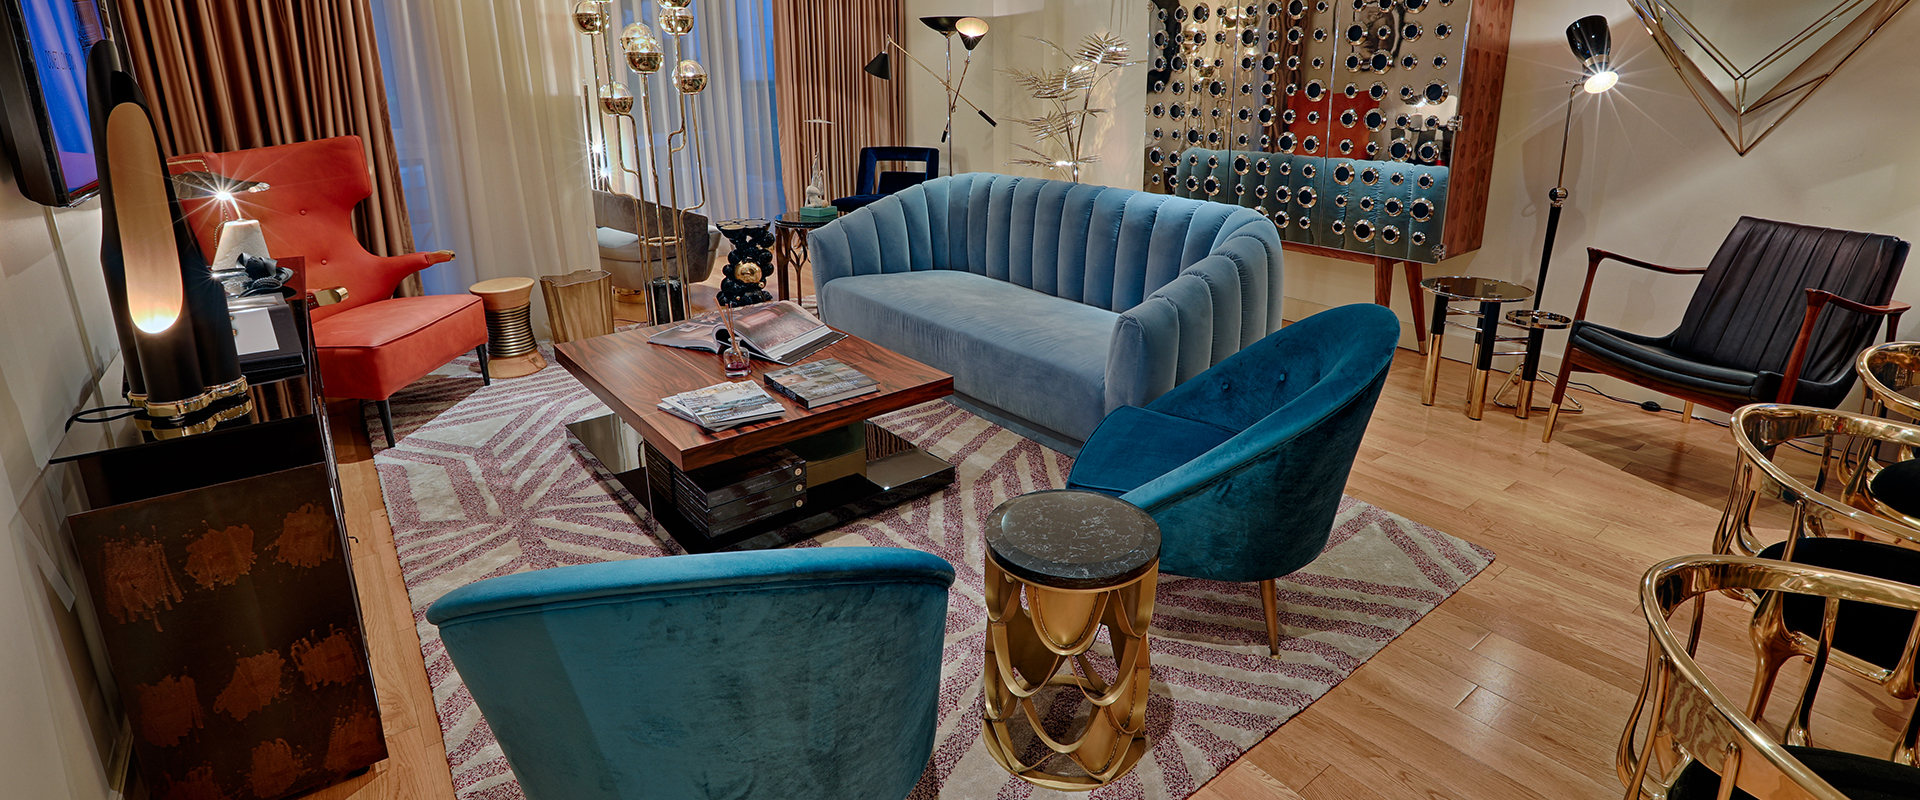 showroom Visit the Most Coveted Showrooms from your Home – Discover our Virtual Tours covet london